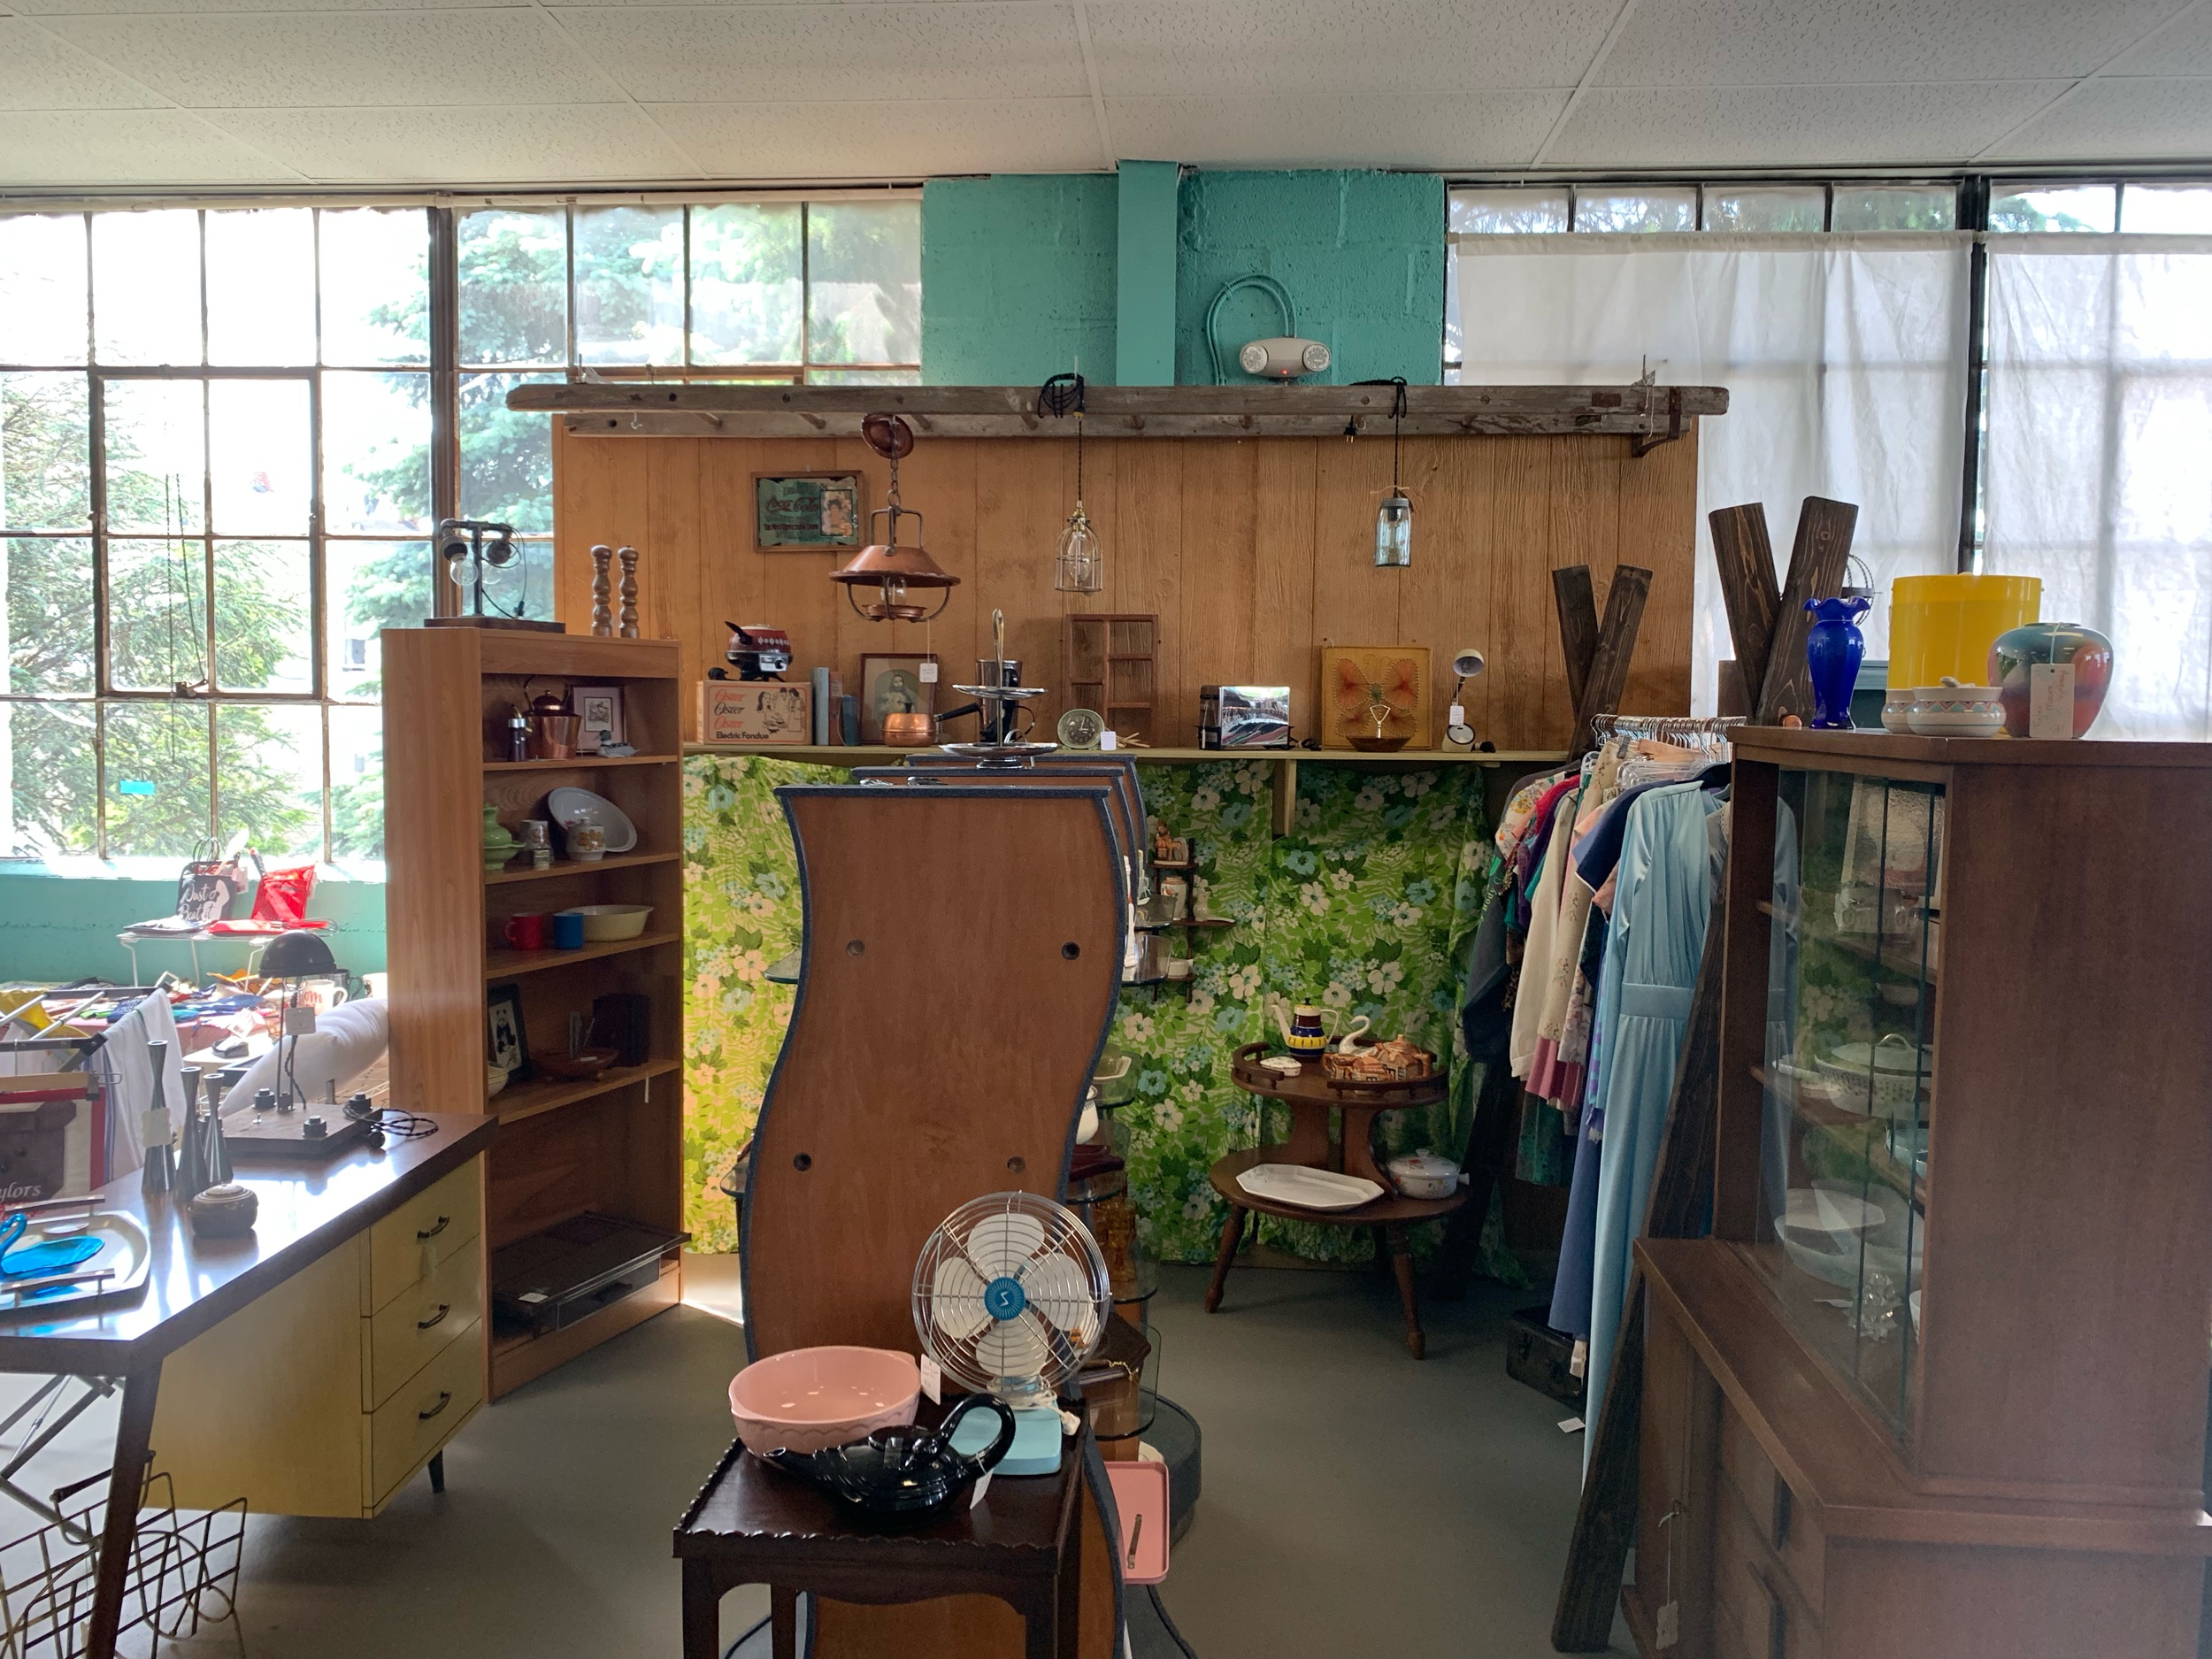 Tyler moore Vintage - Vintage Kitchen, Pyrex, clothing, and more!